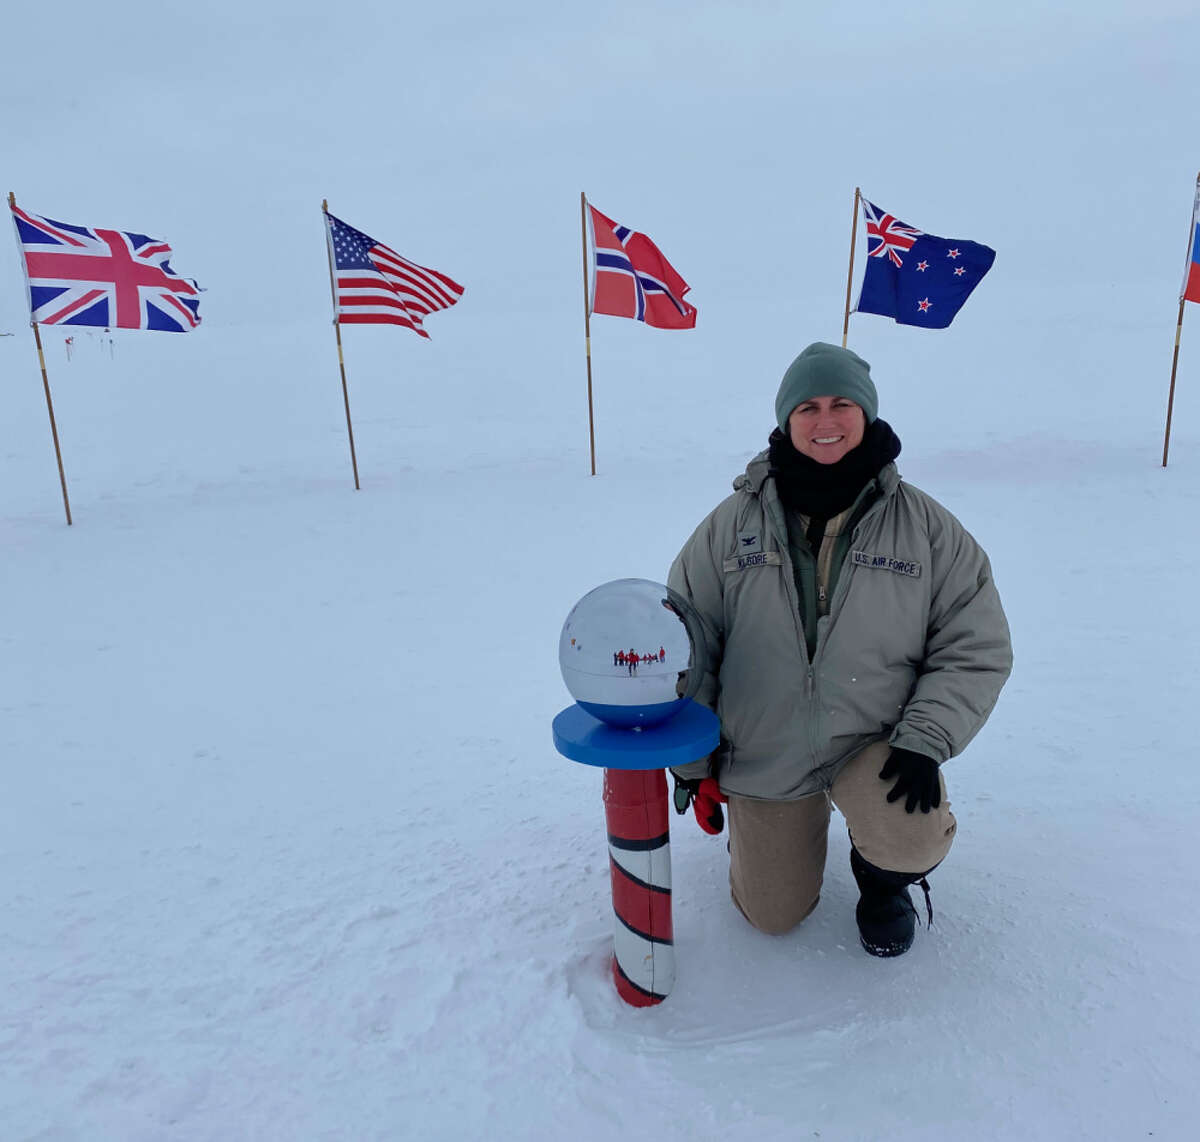 Col. Michele Kilgore, the commander of the New York Air National Guard's 109th Airlift Wing, is on duty at the South Pole at Amudsen-Scott South Pole Station in Antarctica on Feb., 6, 2020. (Courtesy Col. Michele Kilgore)